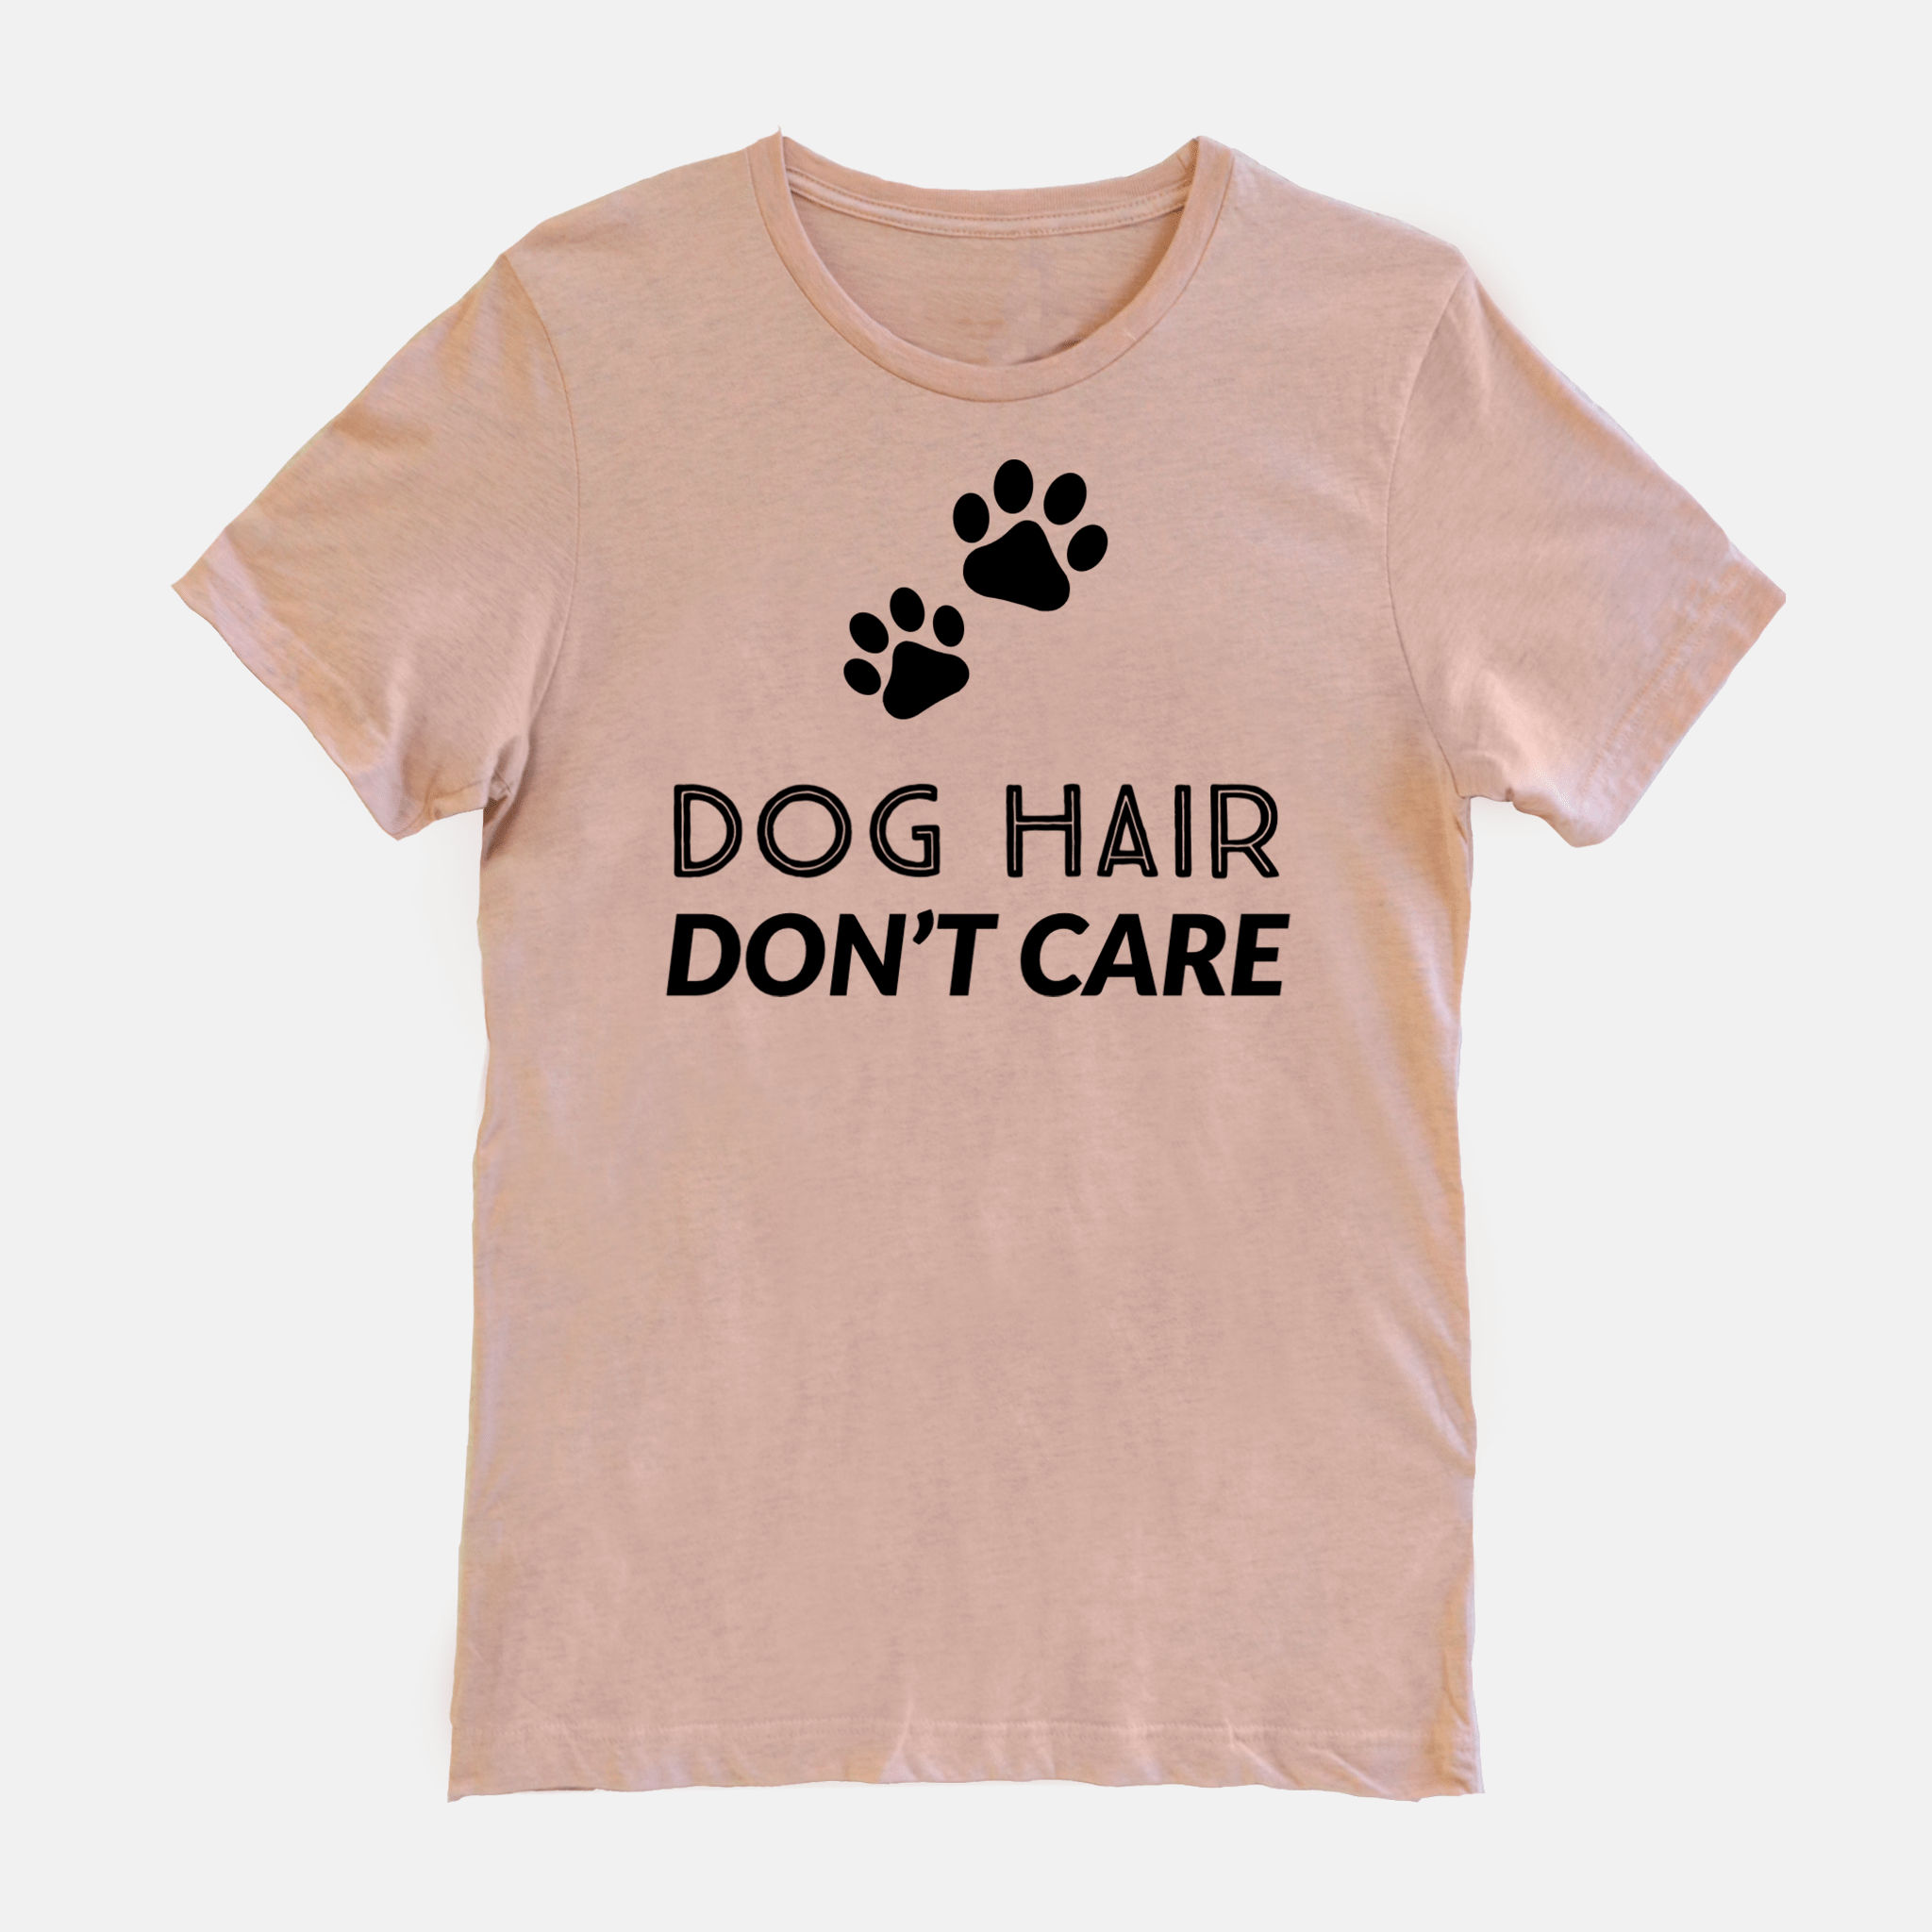 Dog Hair Don't Care Short Sleeves Shirt